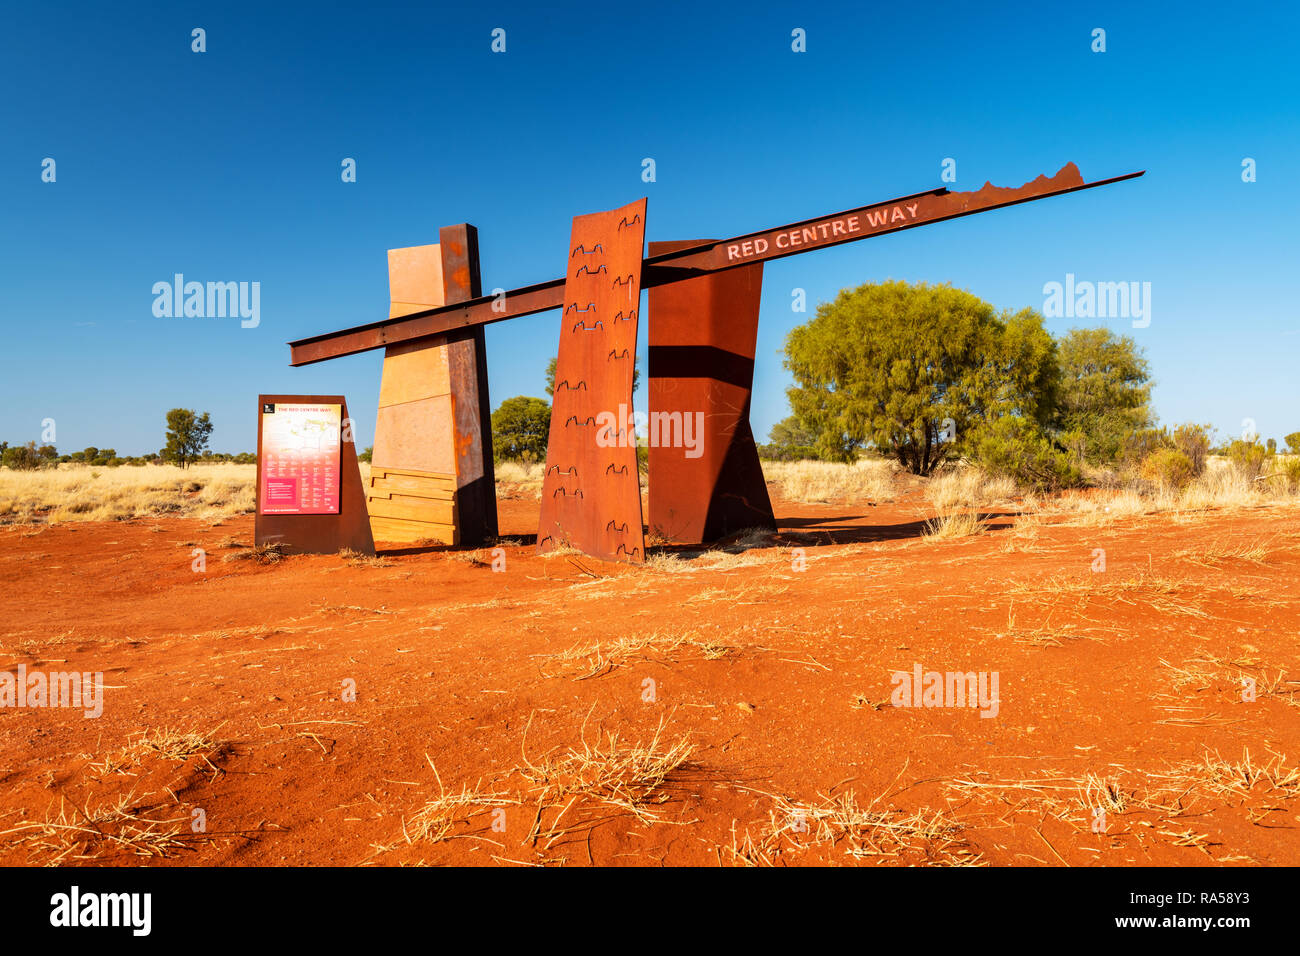 Road Sign and information board at the Red Centre Way. - Stock Image